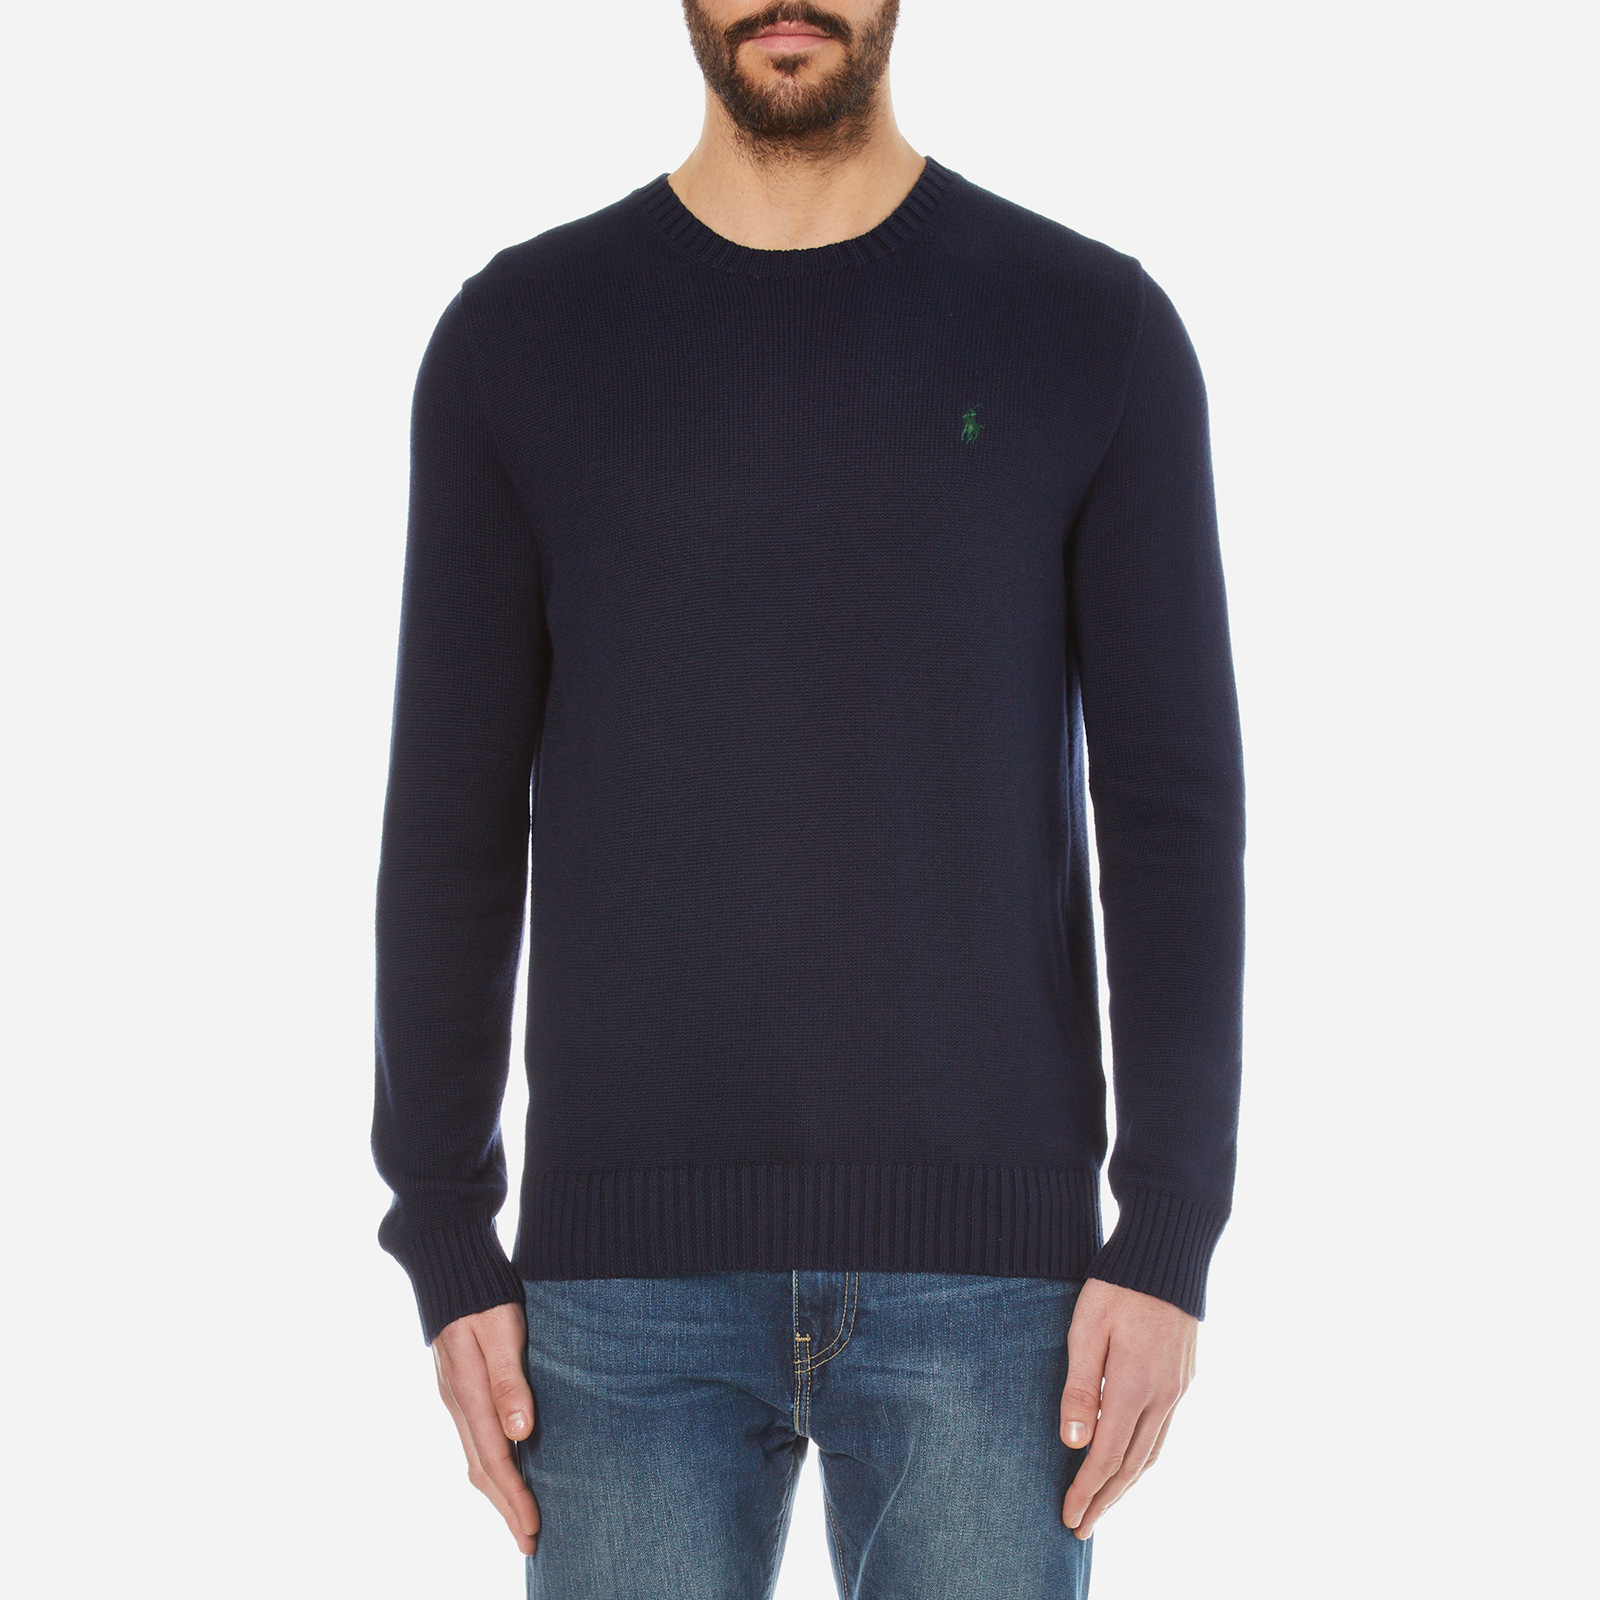 097dcfd08 Polo Ralph Lauren Men s Crew Neck Cotton Knitted Jumper - Hunter Navy -  Free UK Delivery over £50